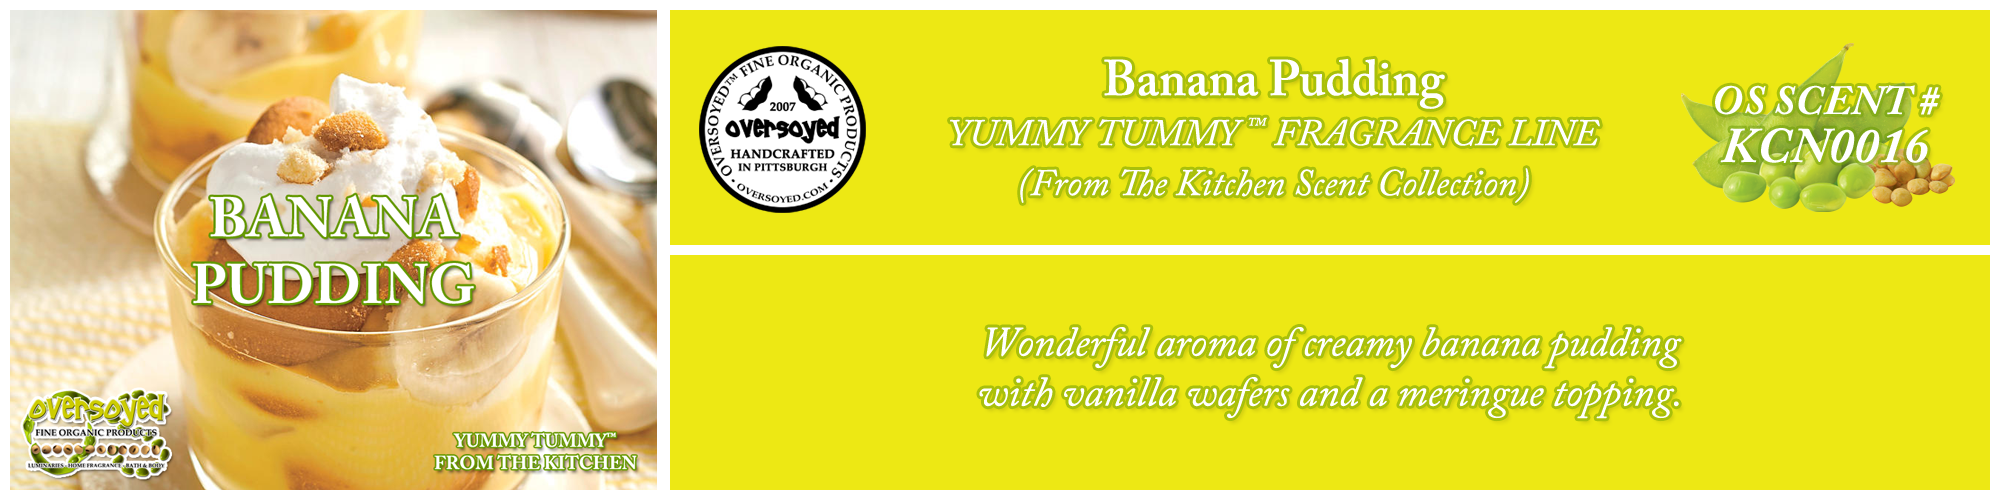 Banana Pudding Handcrafted Products Collection